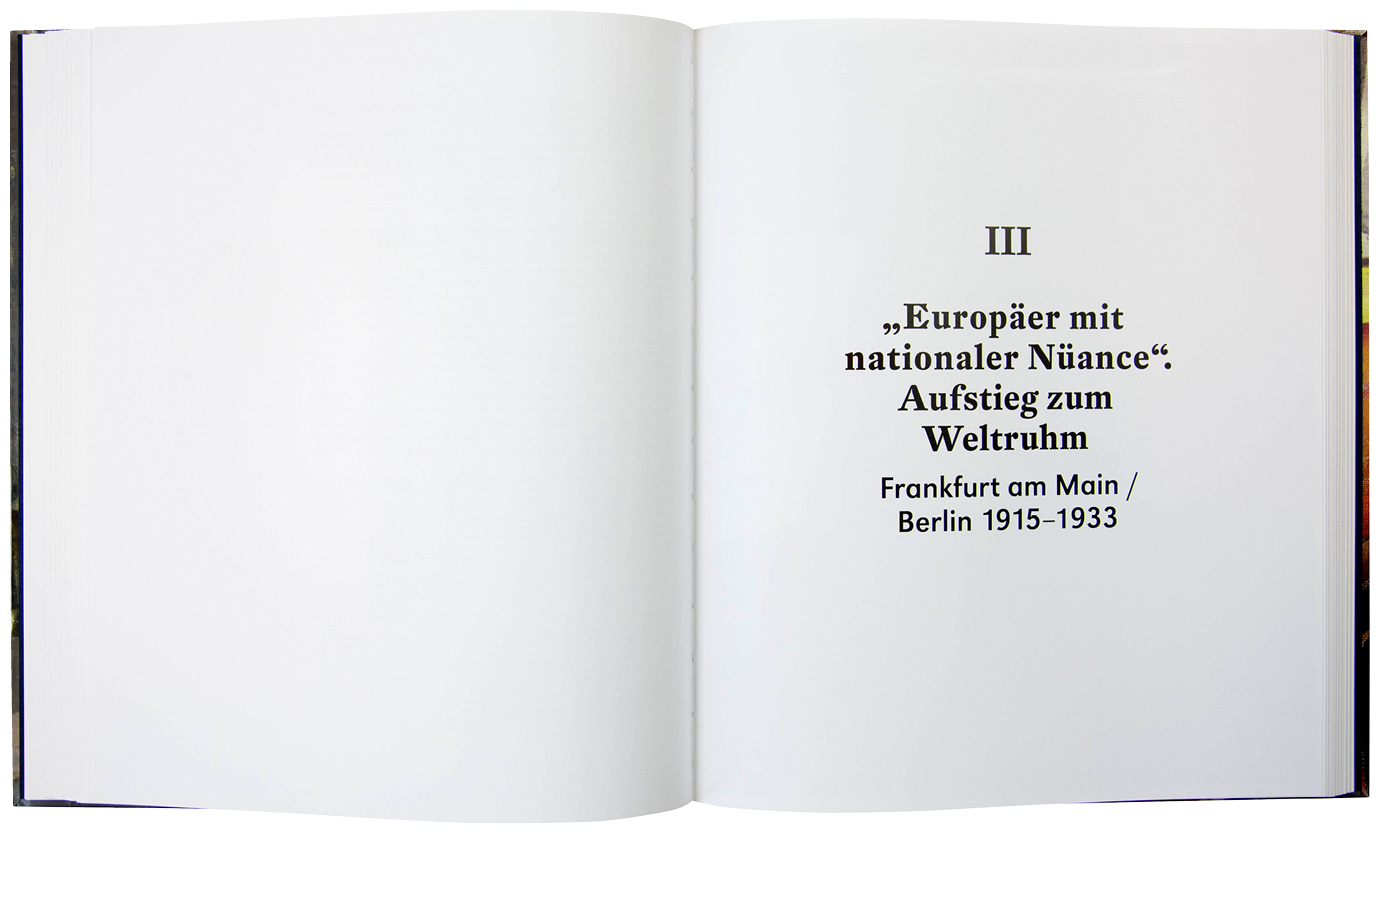 http://e-o-t.de/wordpress/wp-content/uploads/2017/07/2015_eot-Beckmann-Book-10.jpg